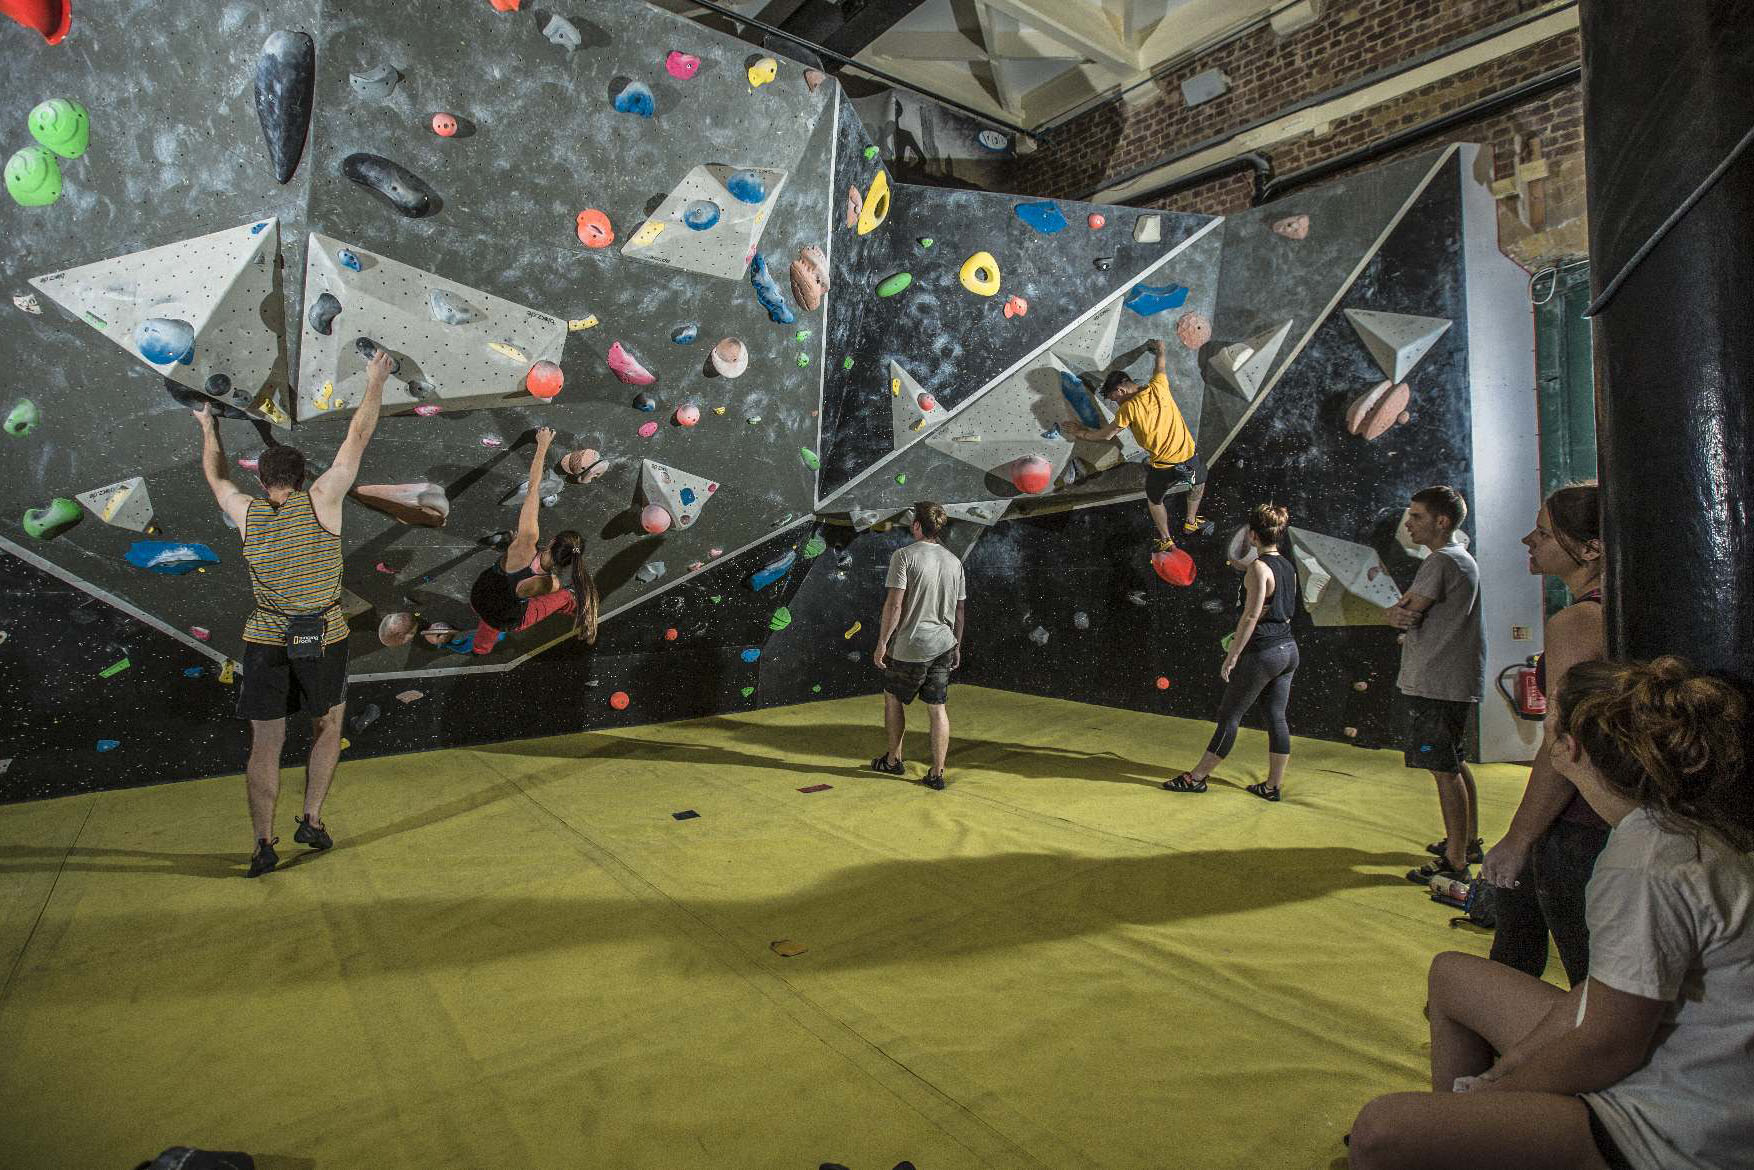 The North Face offers free climbing sessions